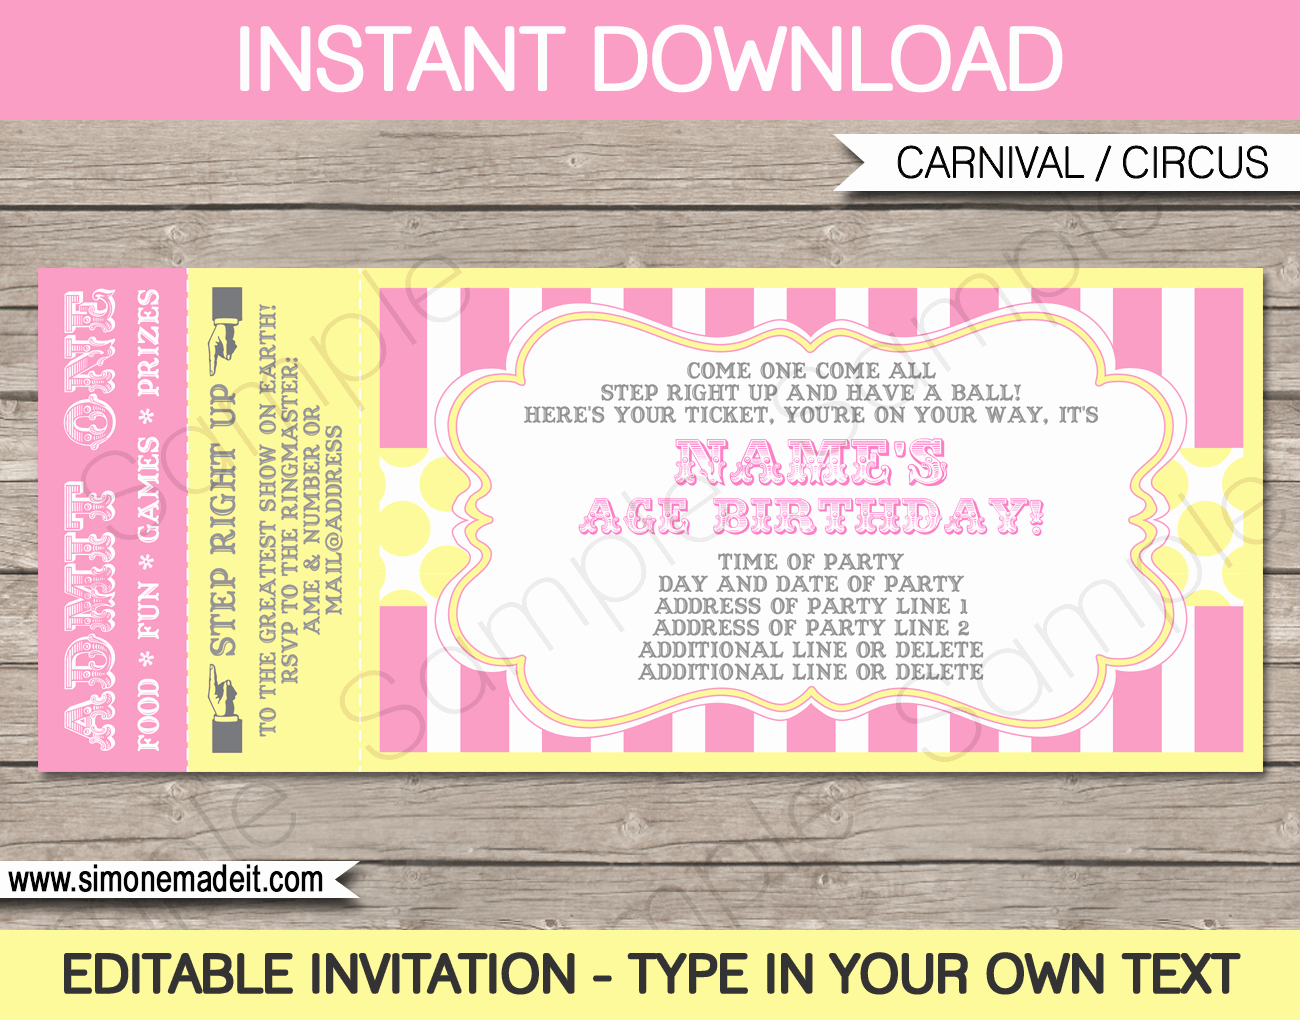 Circus Ticket Invitation Beautiful Carnival Birthday Ticket Invitation Template